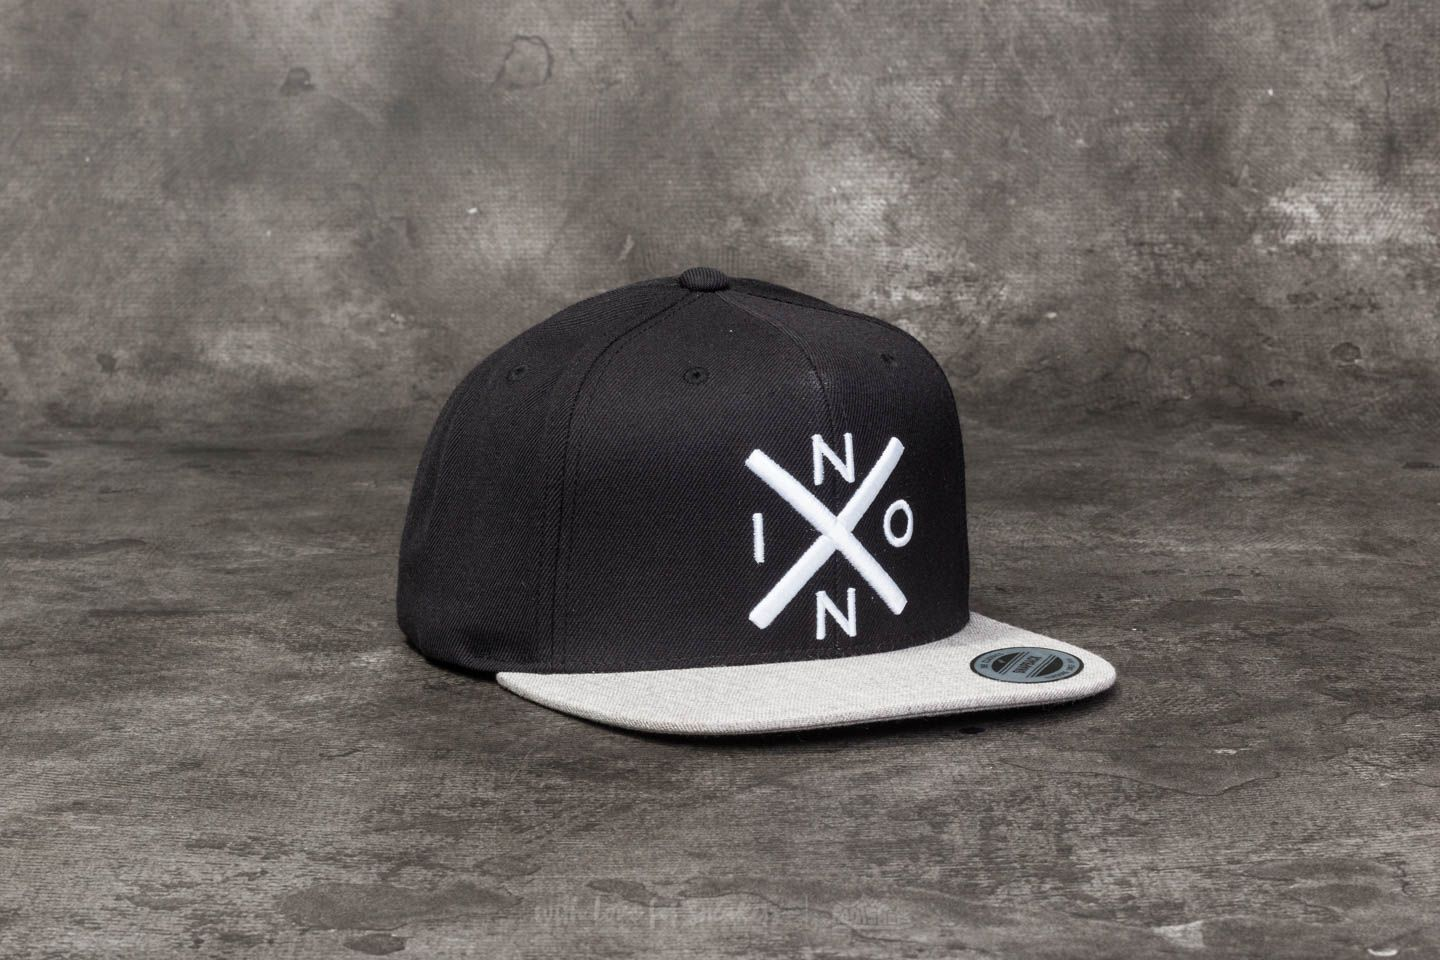 Nixon Exchange Snapback Black  Heather Gray  43644f4302a7